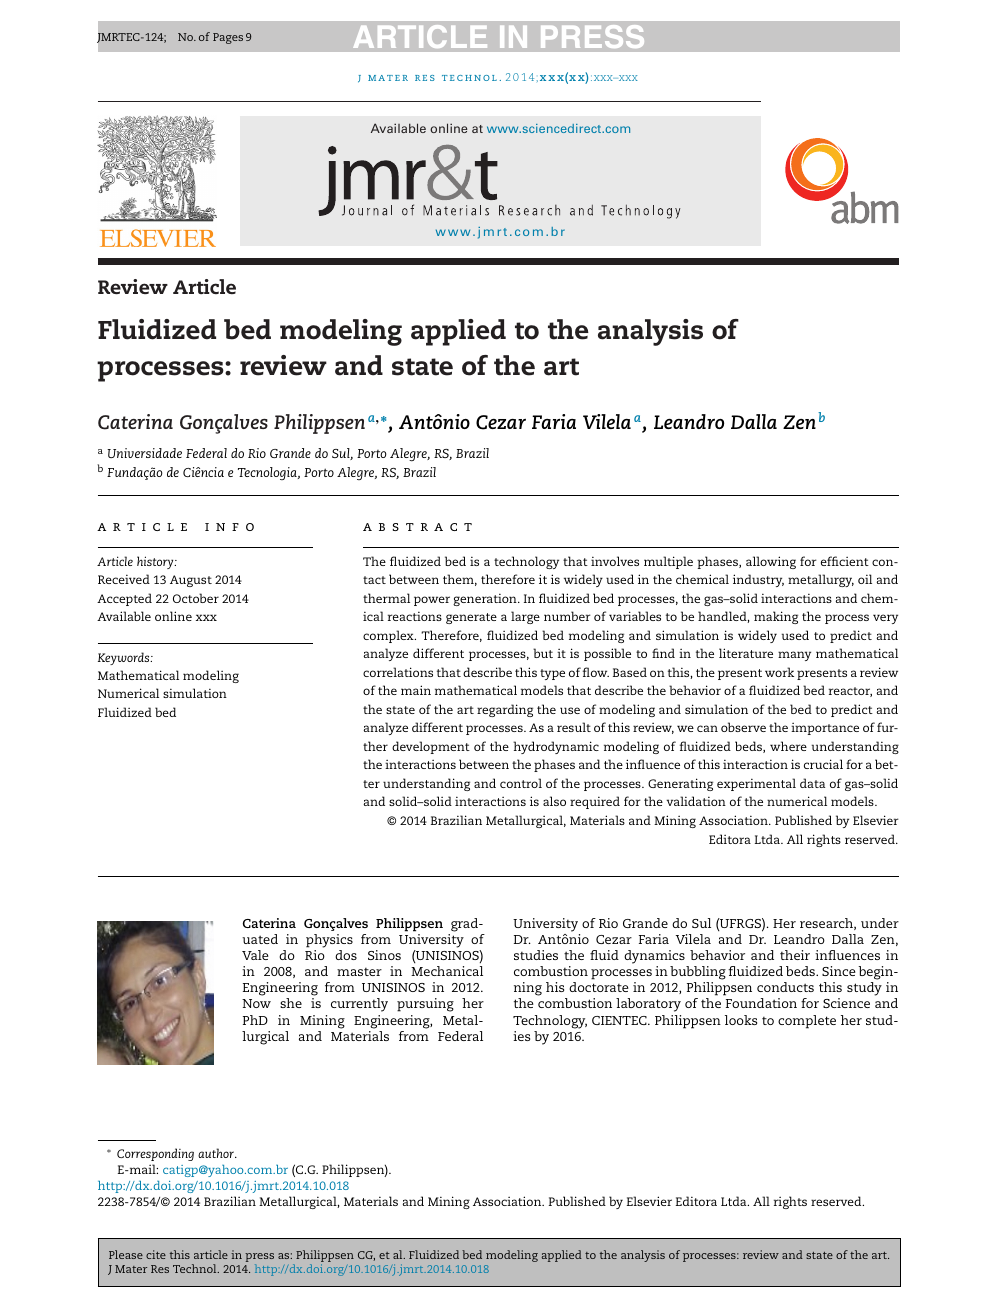 Fluidized bed modeling applied to the analysis of processes